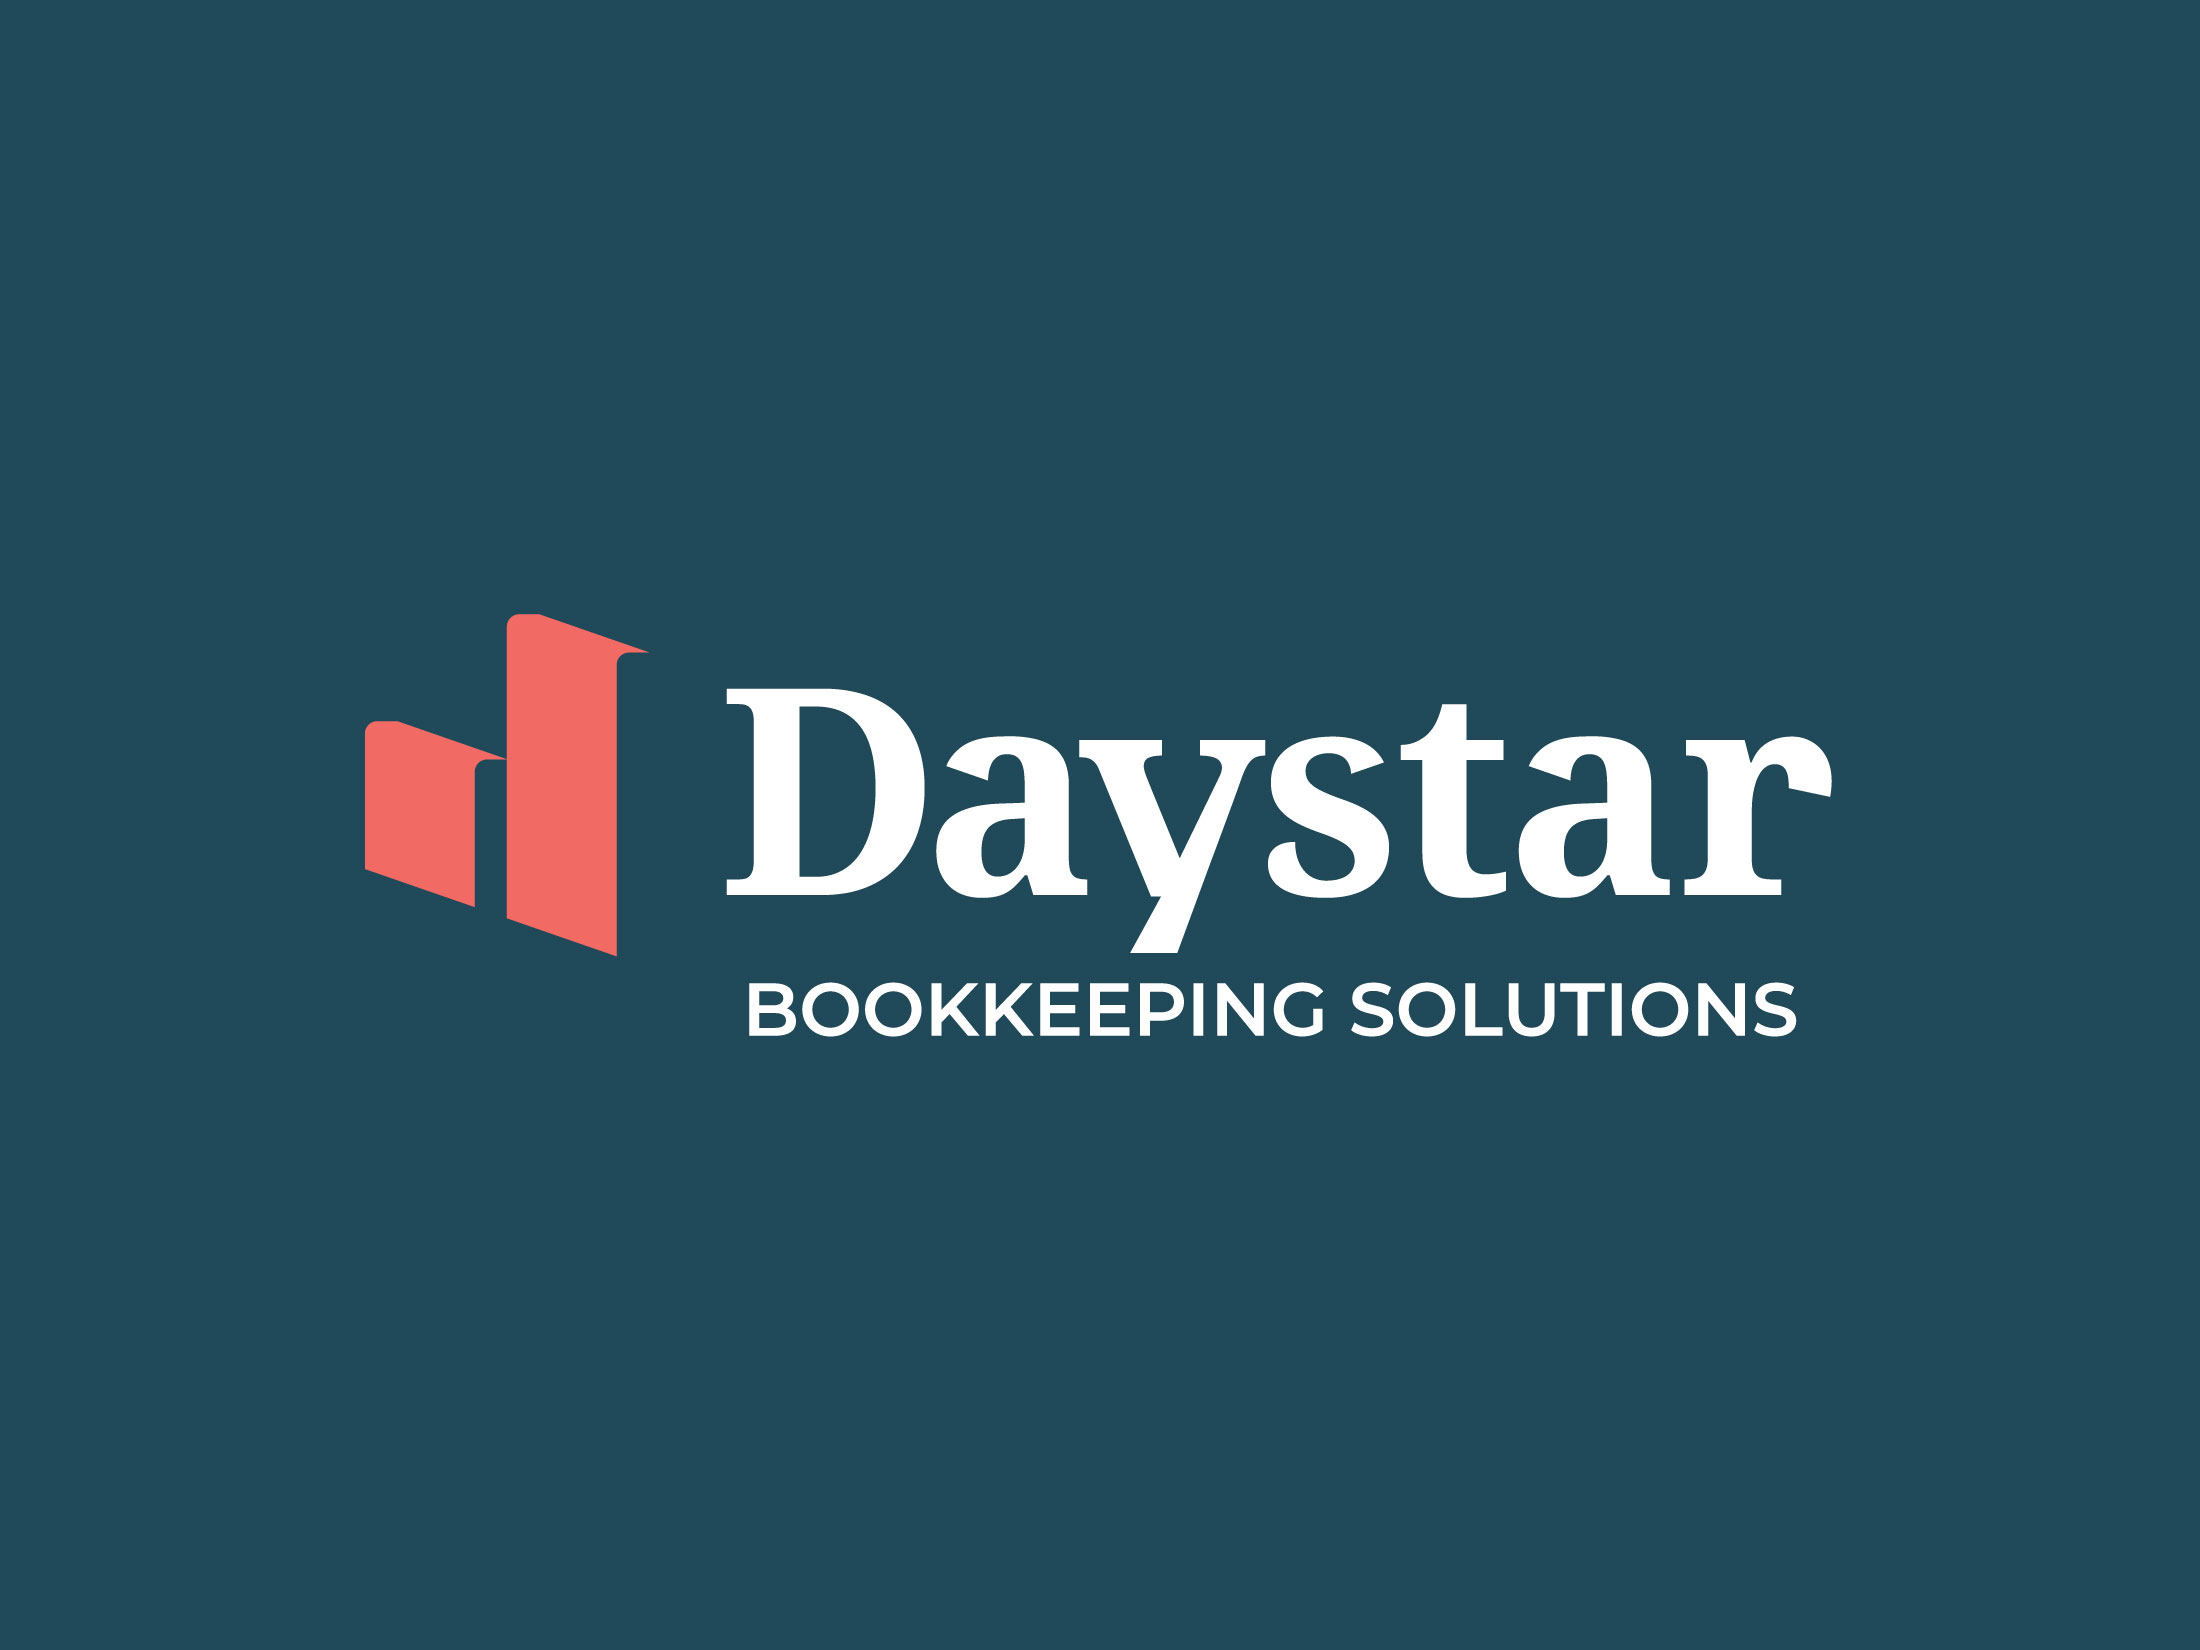 Daystar Bookkeeping Solutions